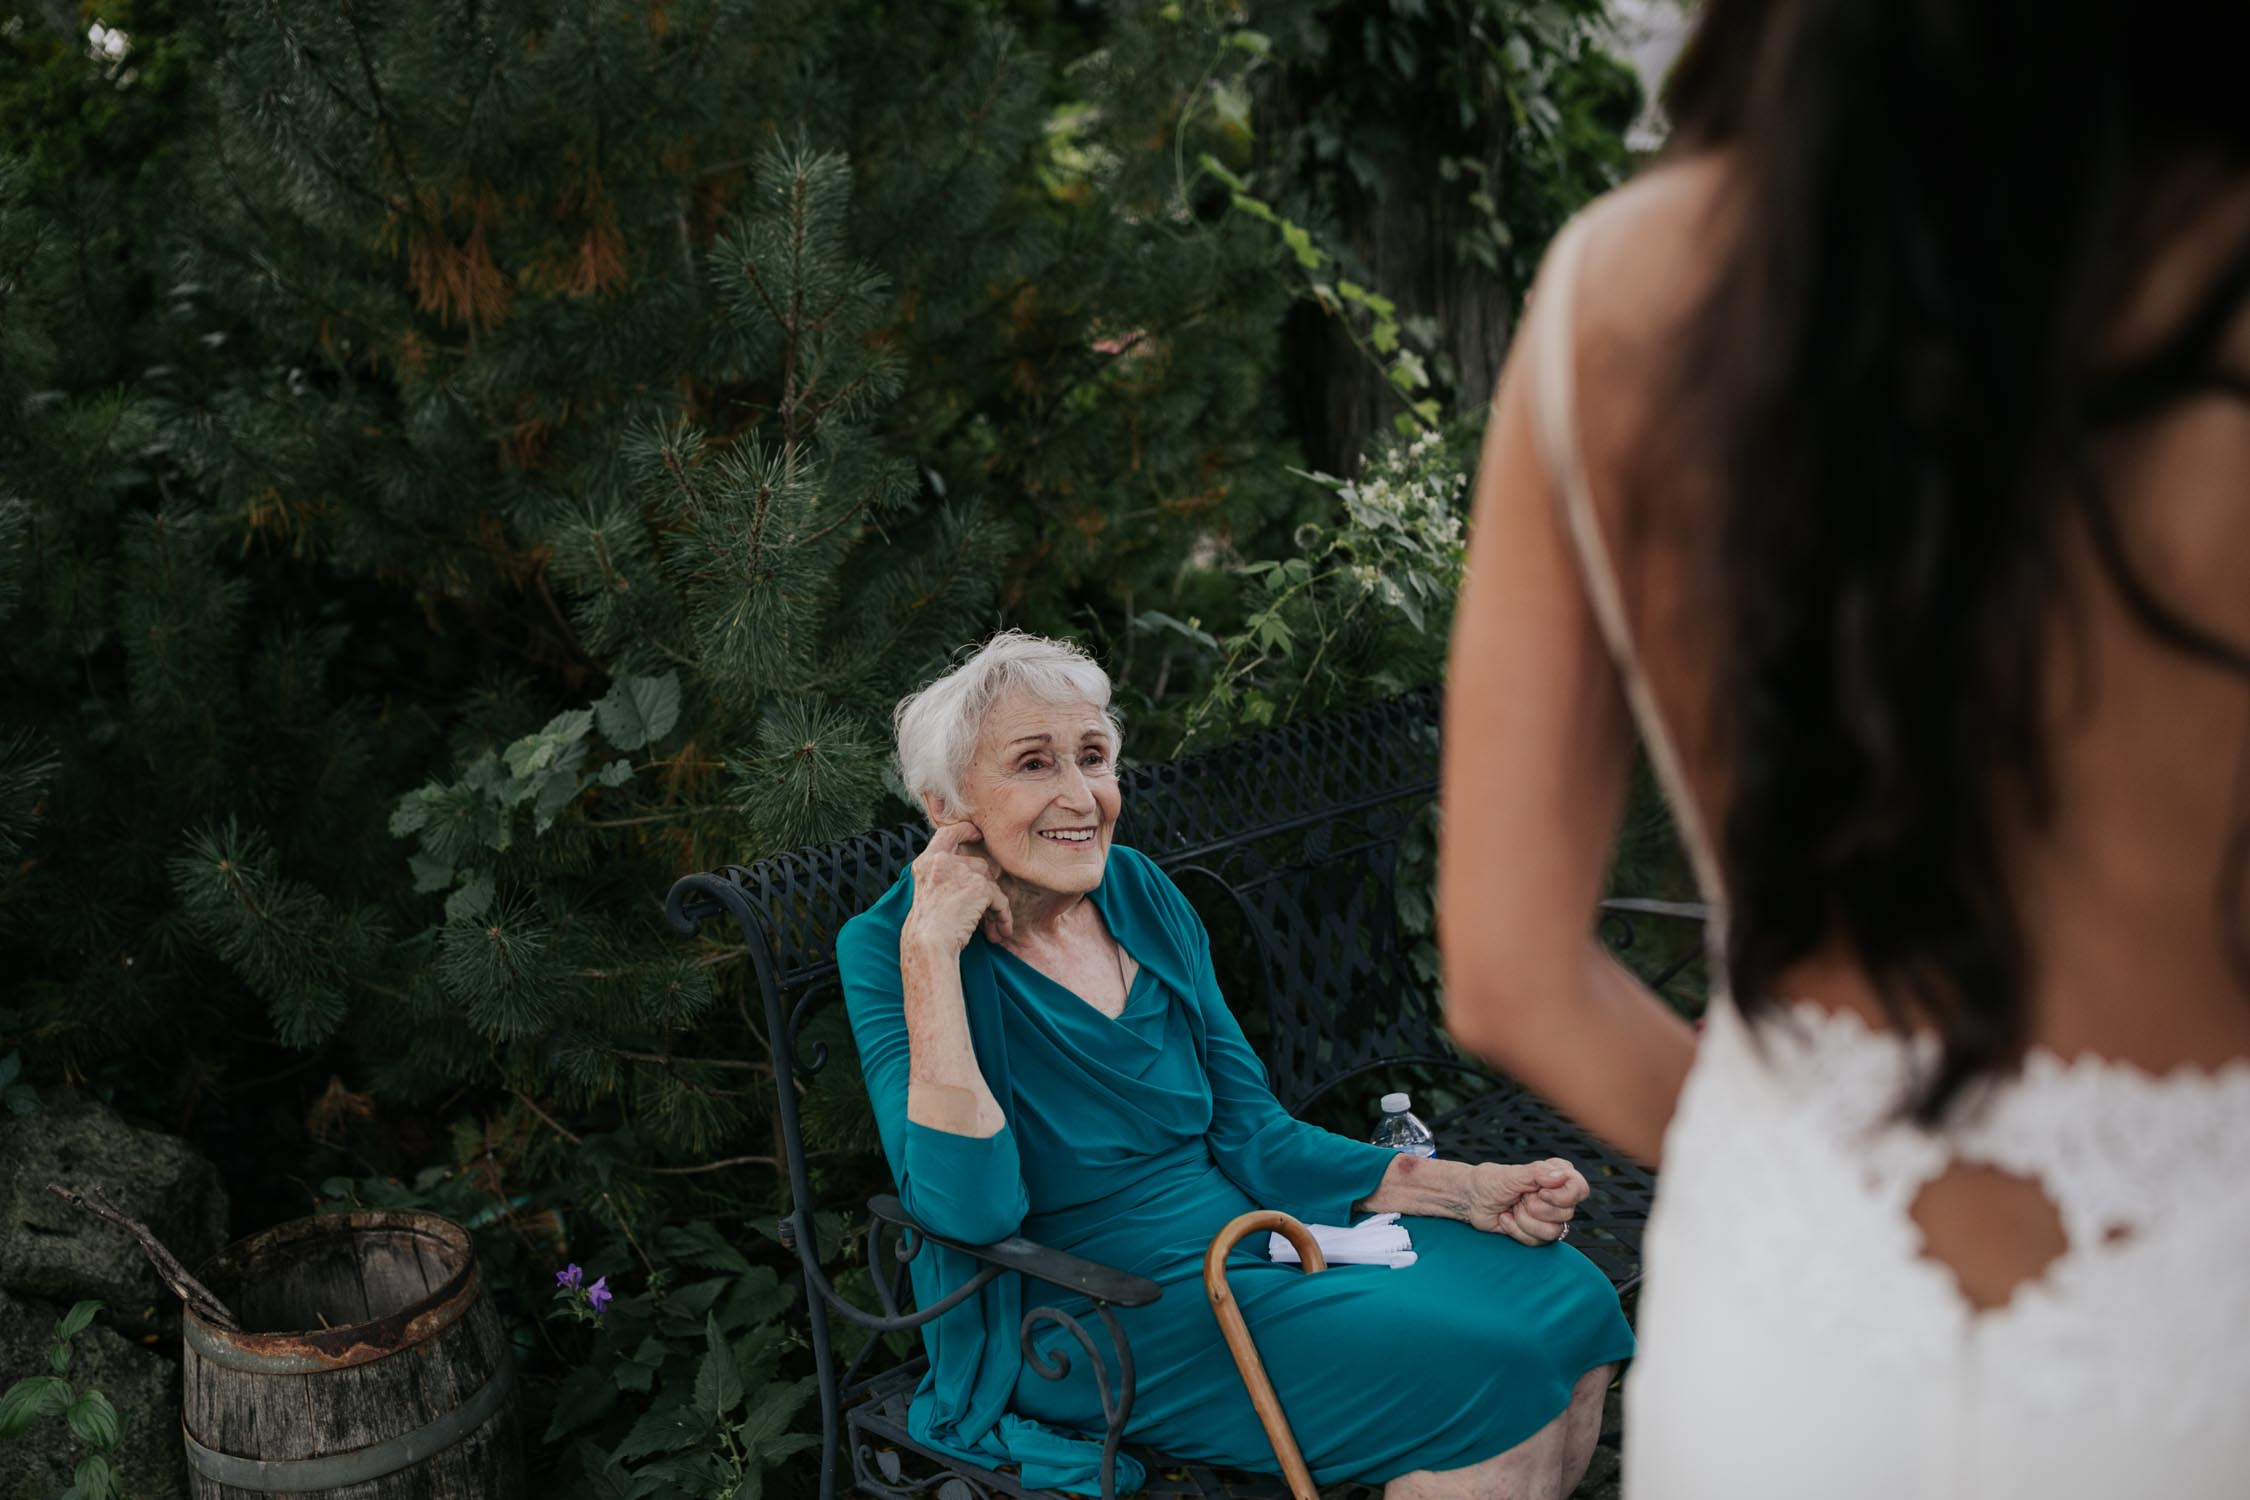 Candid and natural photographs of guests at Madsen's Greenhouse wedding venue in Newmarket close to Toronto